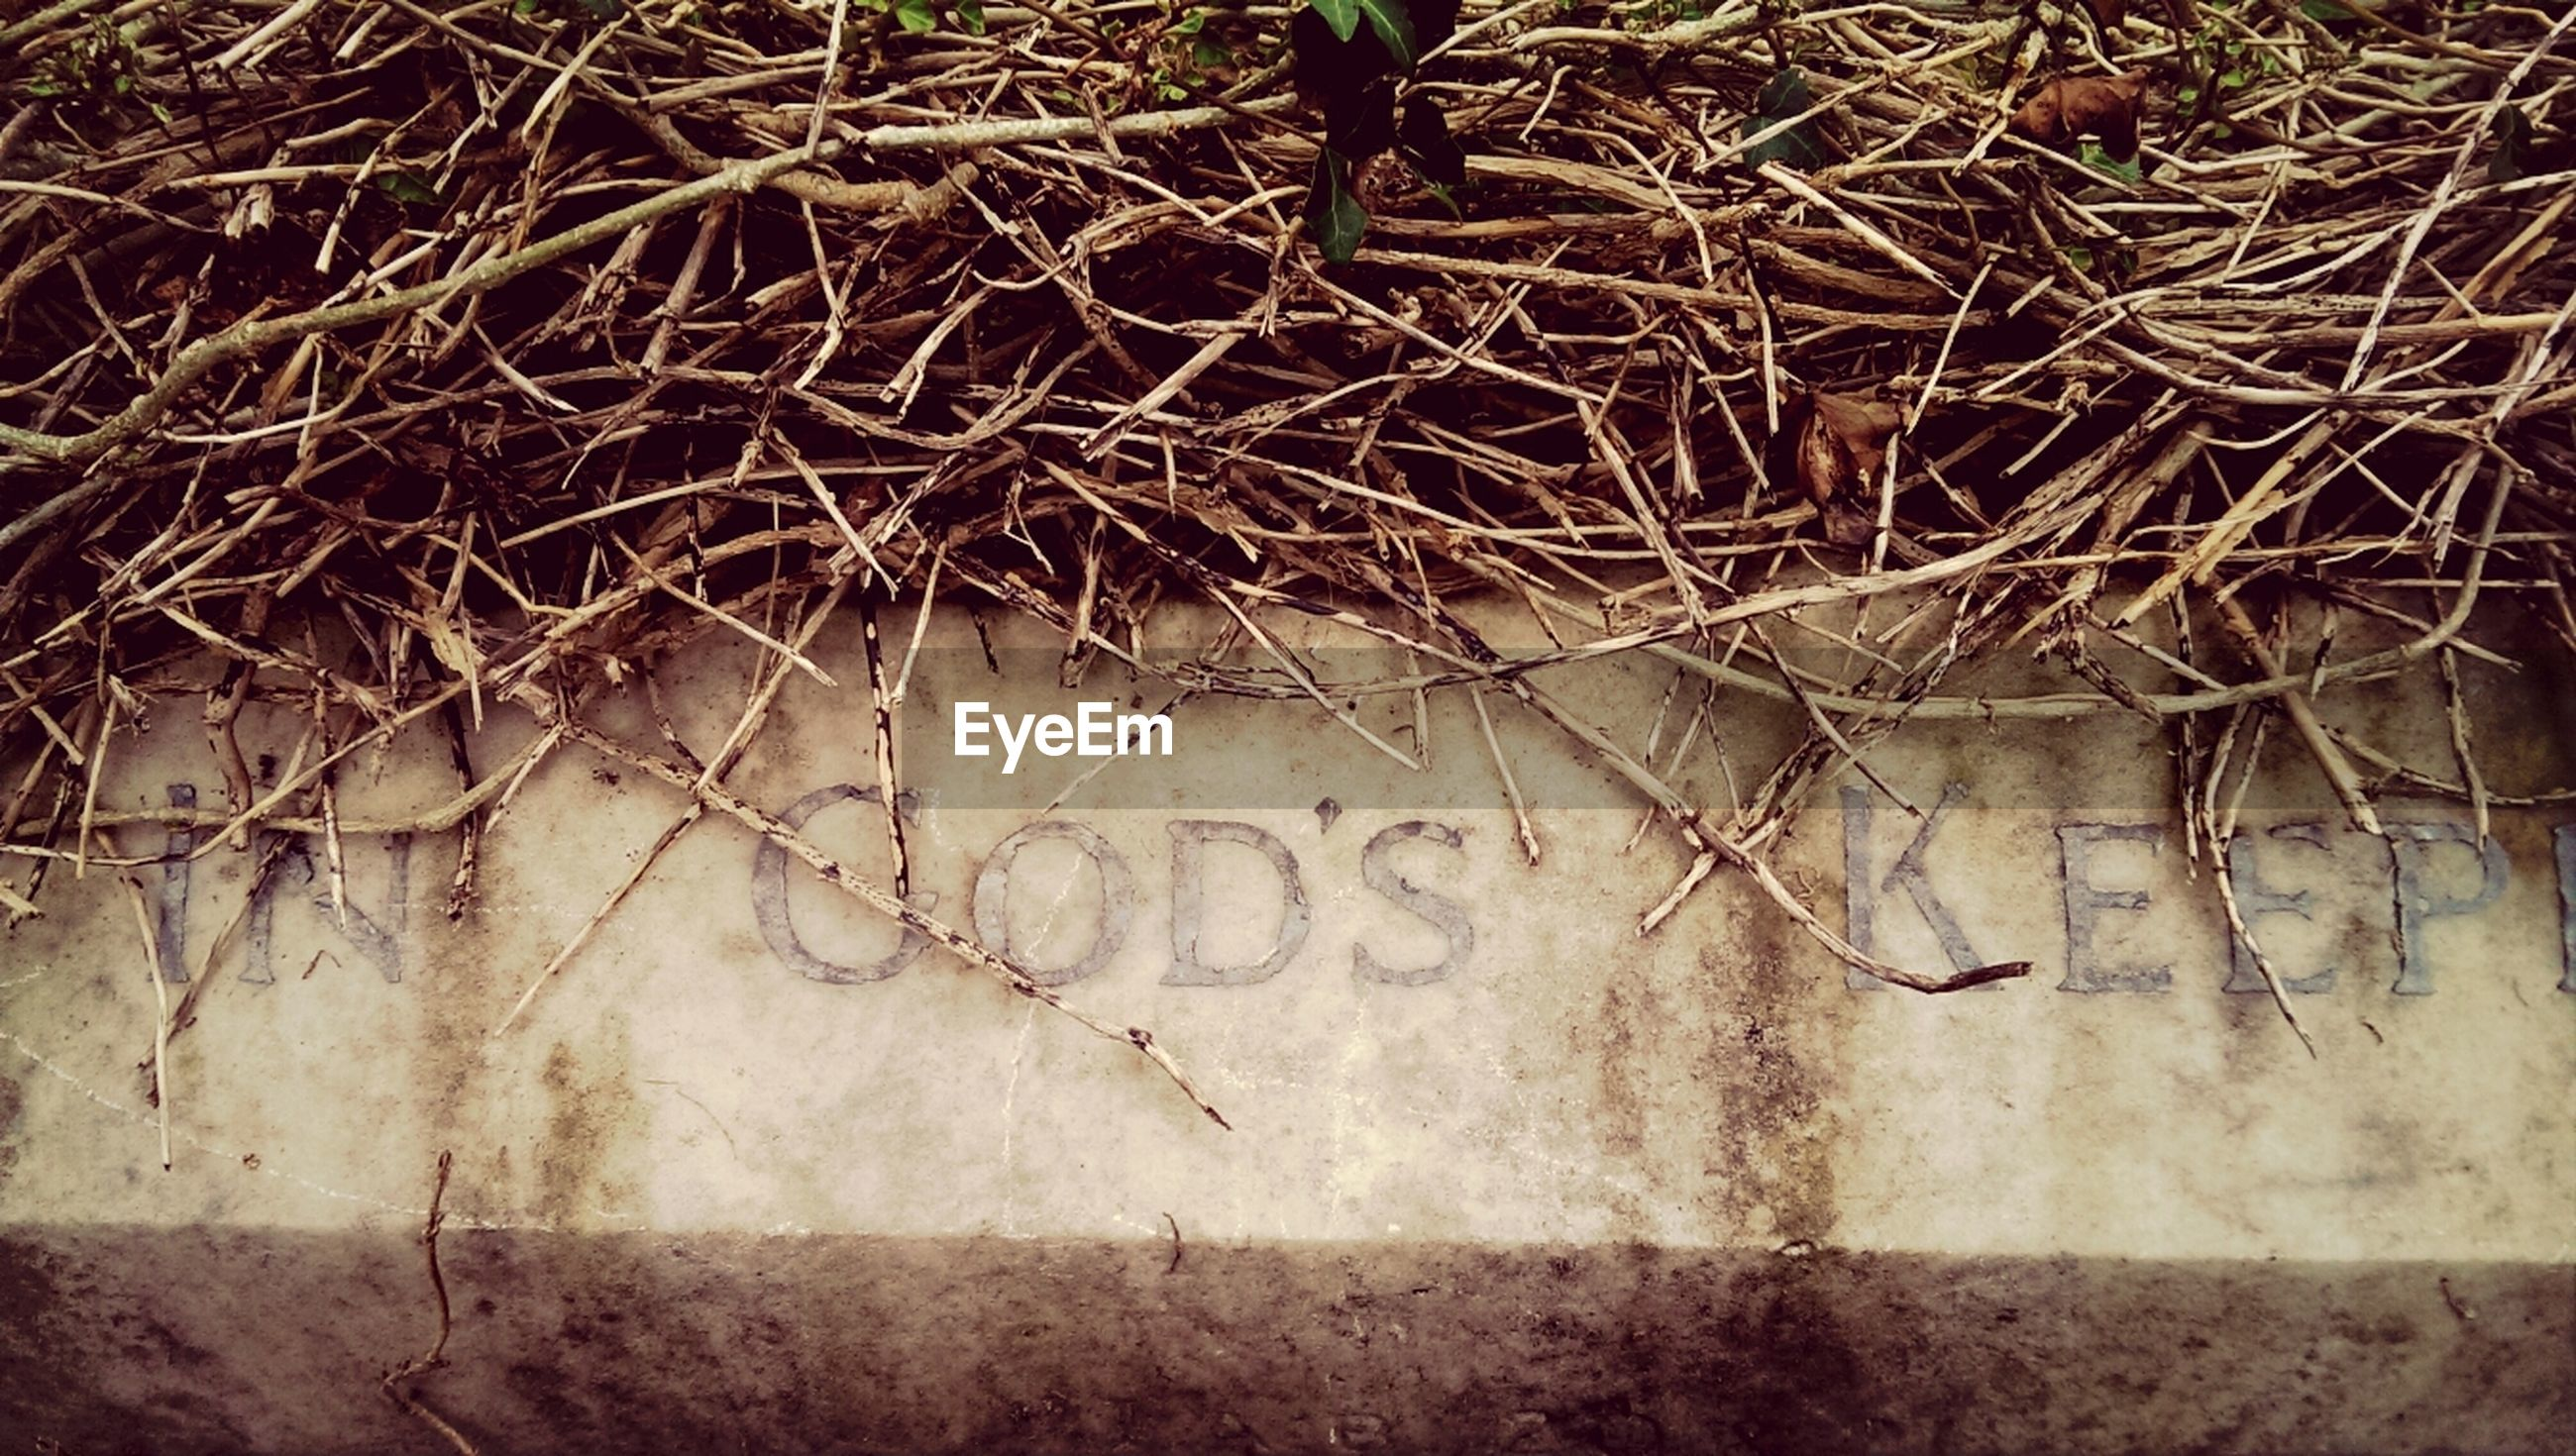 Dry grass and text on tombstone at cemetery